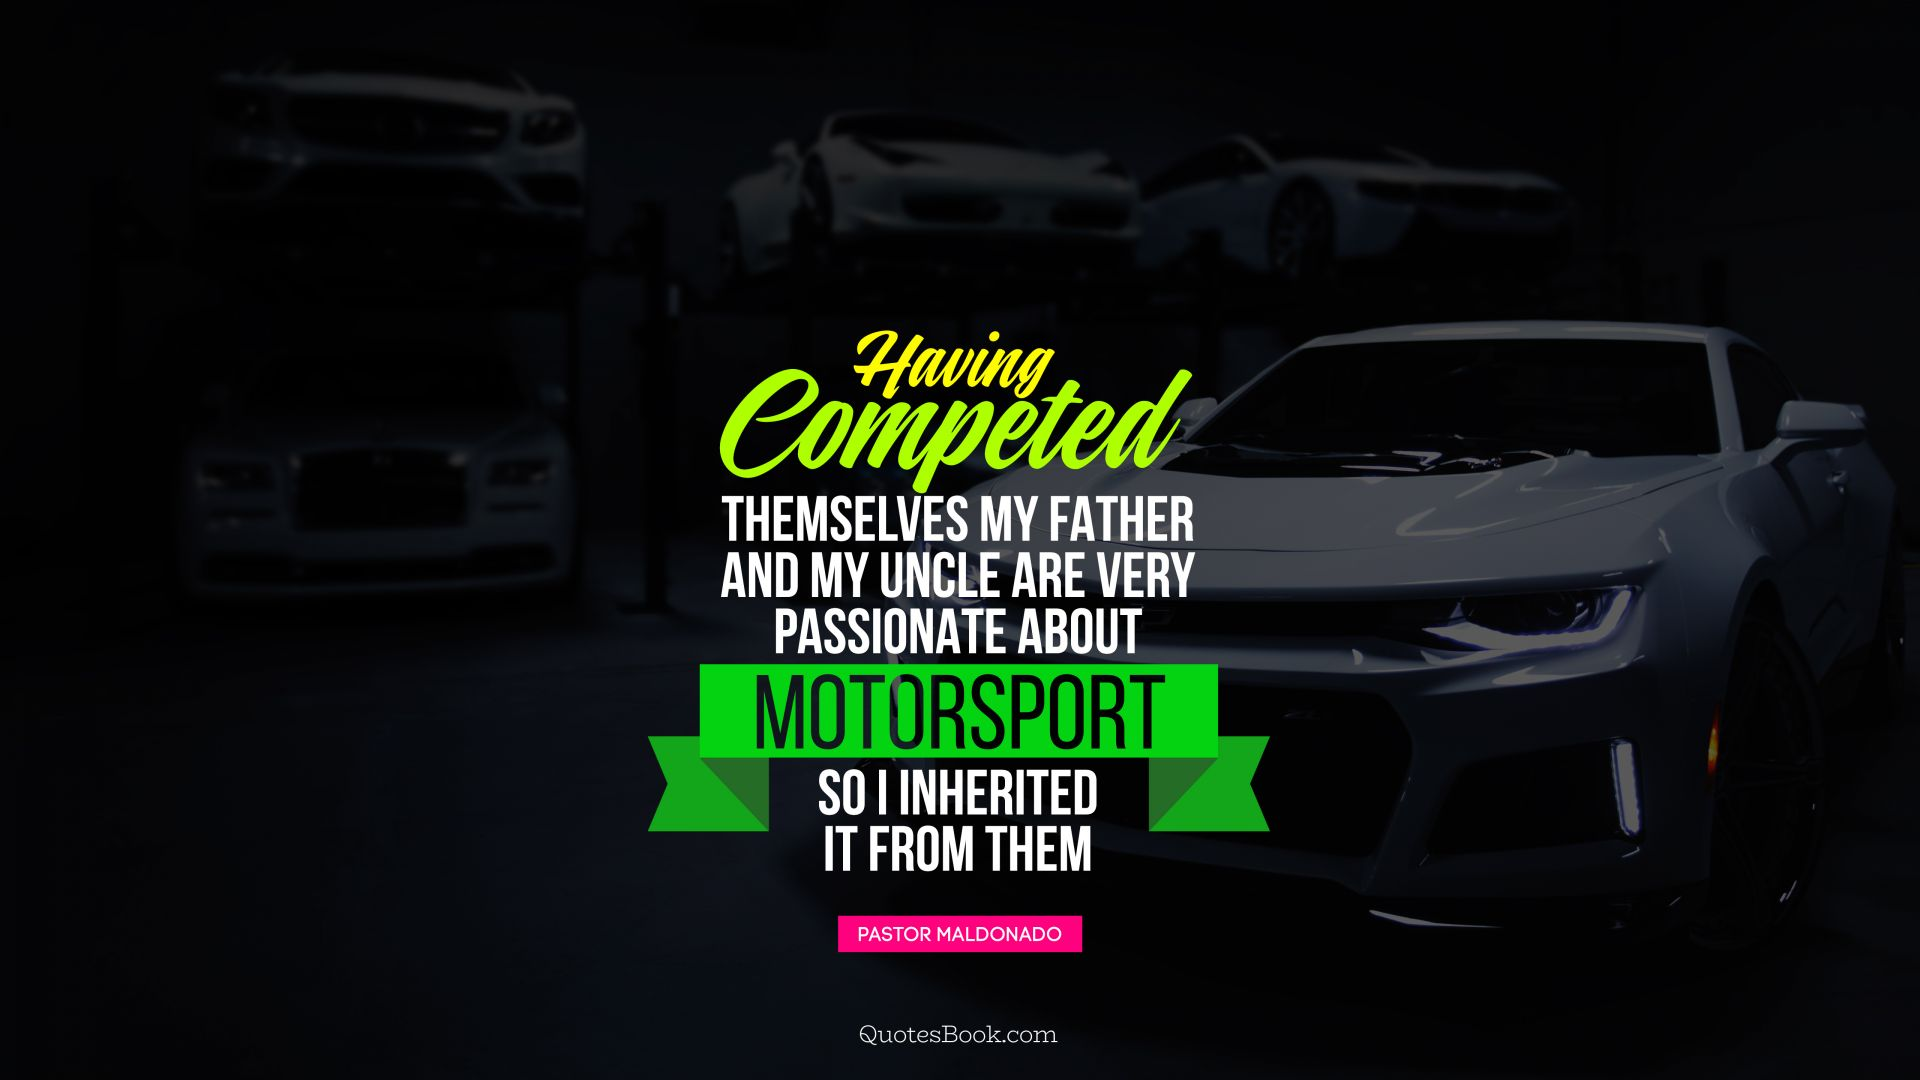 Having competed themselves my father and my uncle are very passionate about motorsport so I inherited it from them. - Quote by Pastor Maldonado